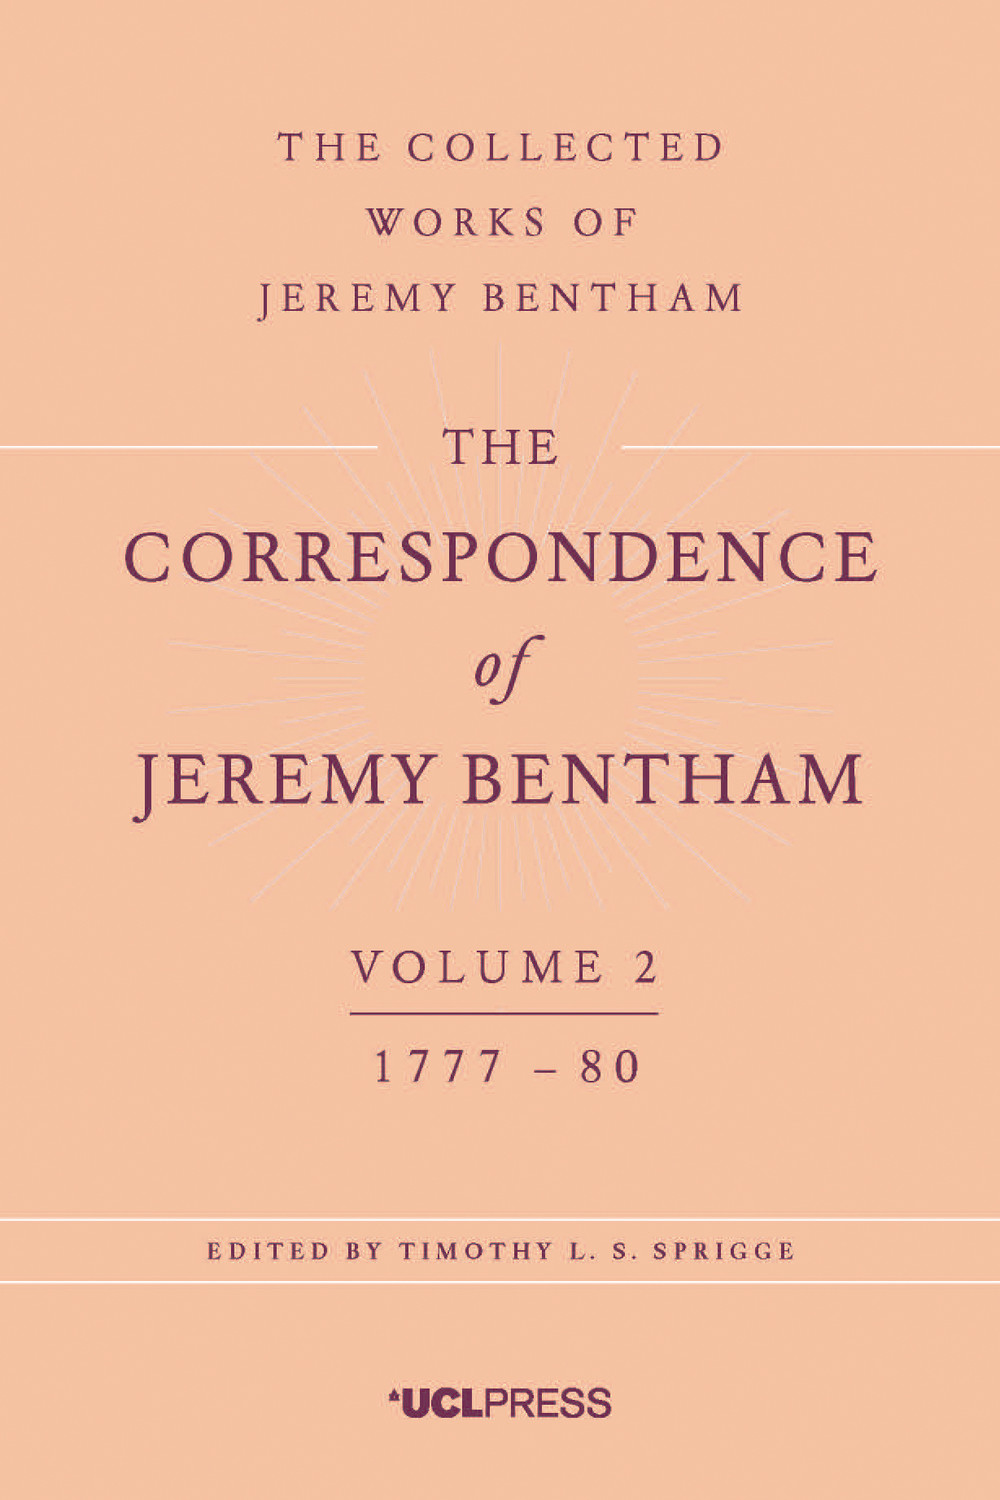 The Correspondence of Jeremy Bentham, Volume 2